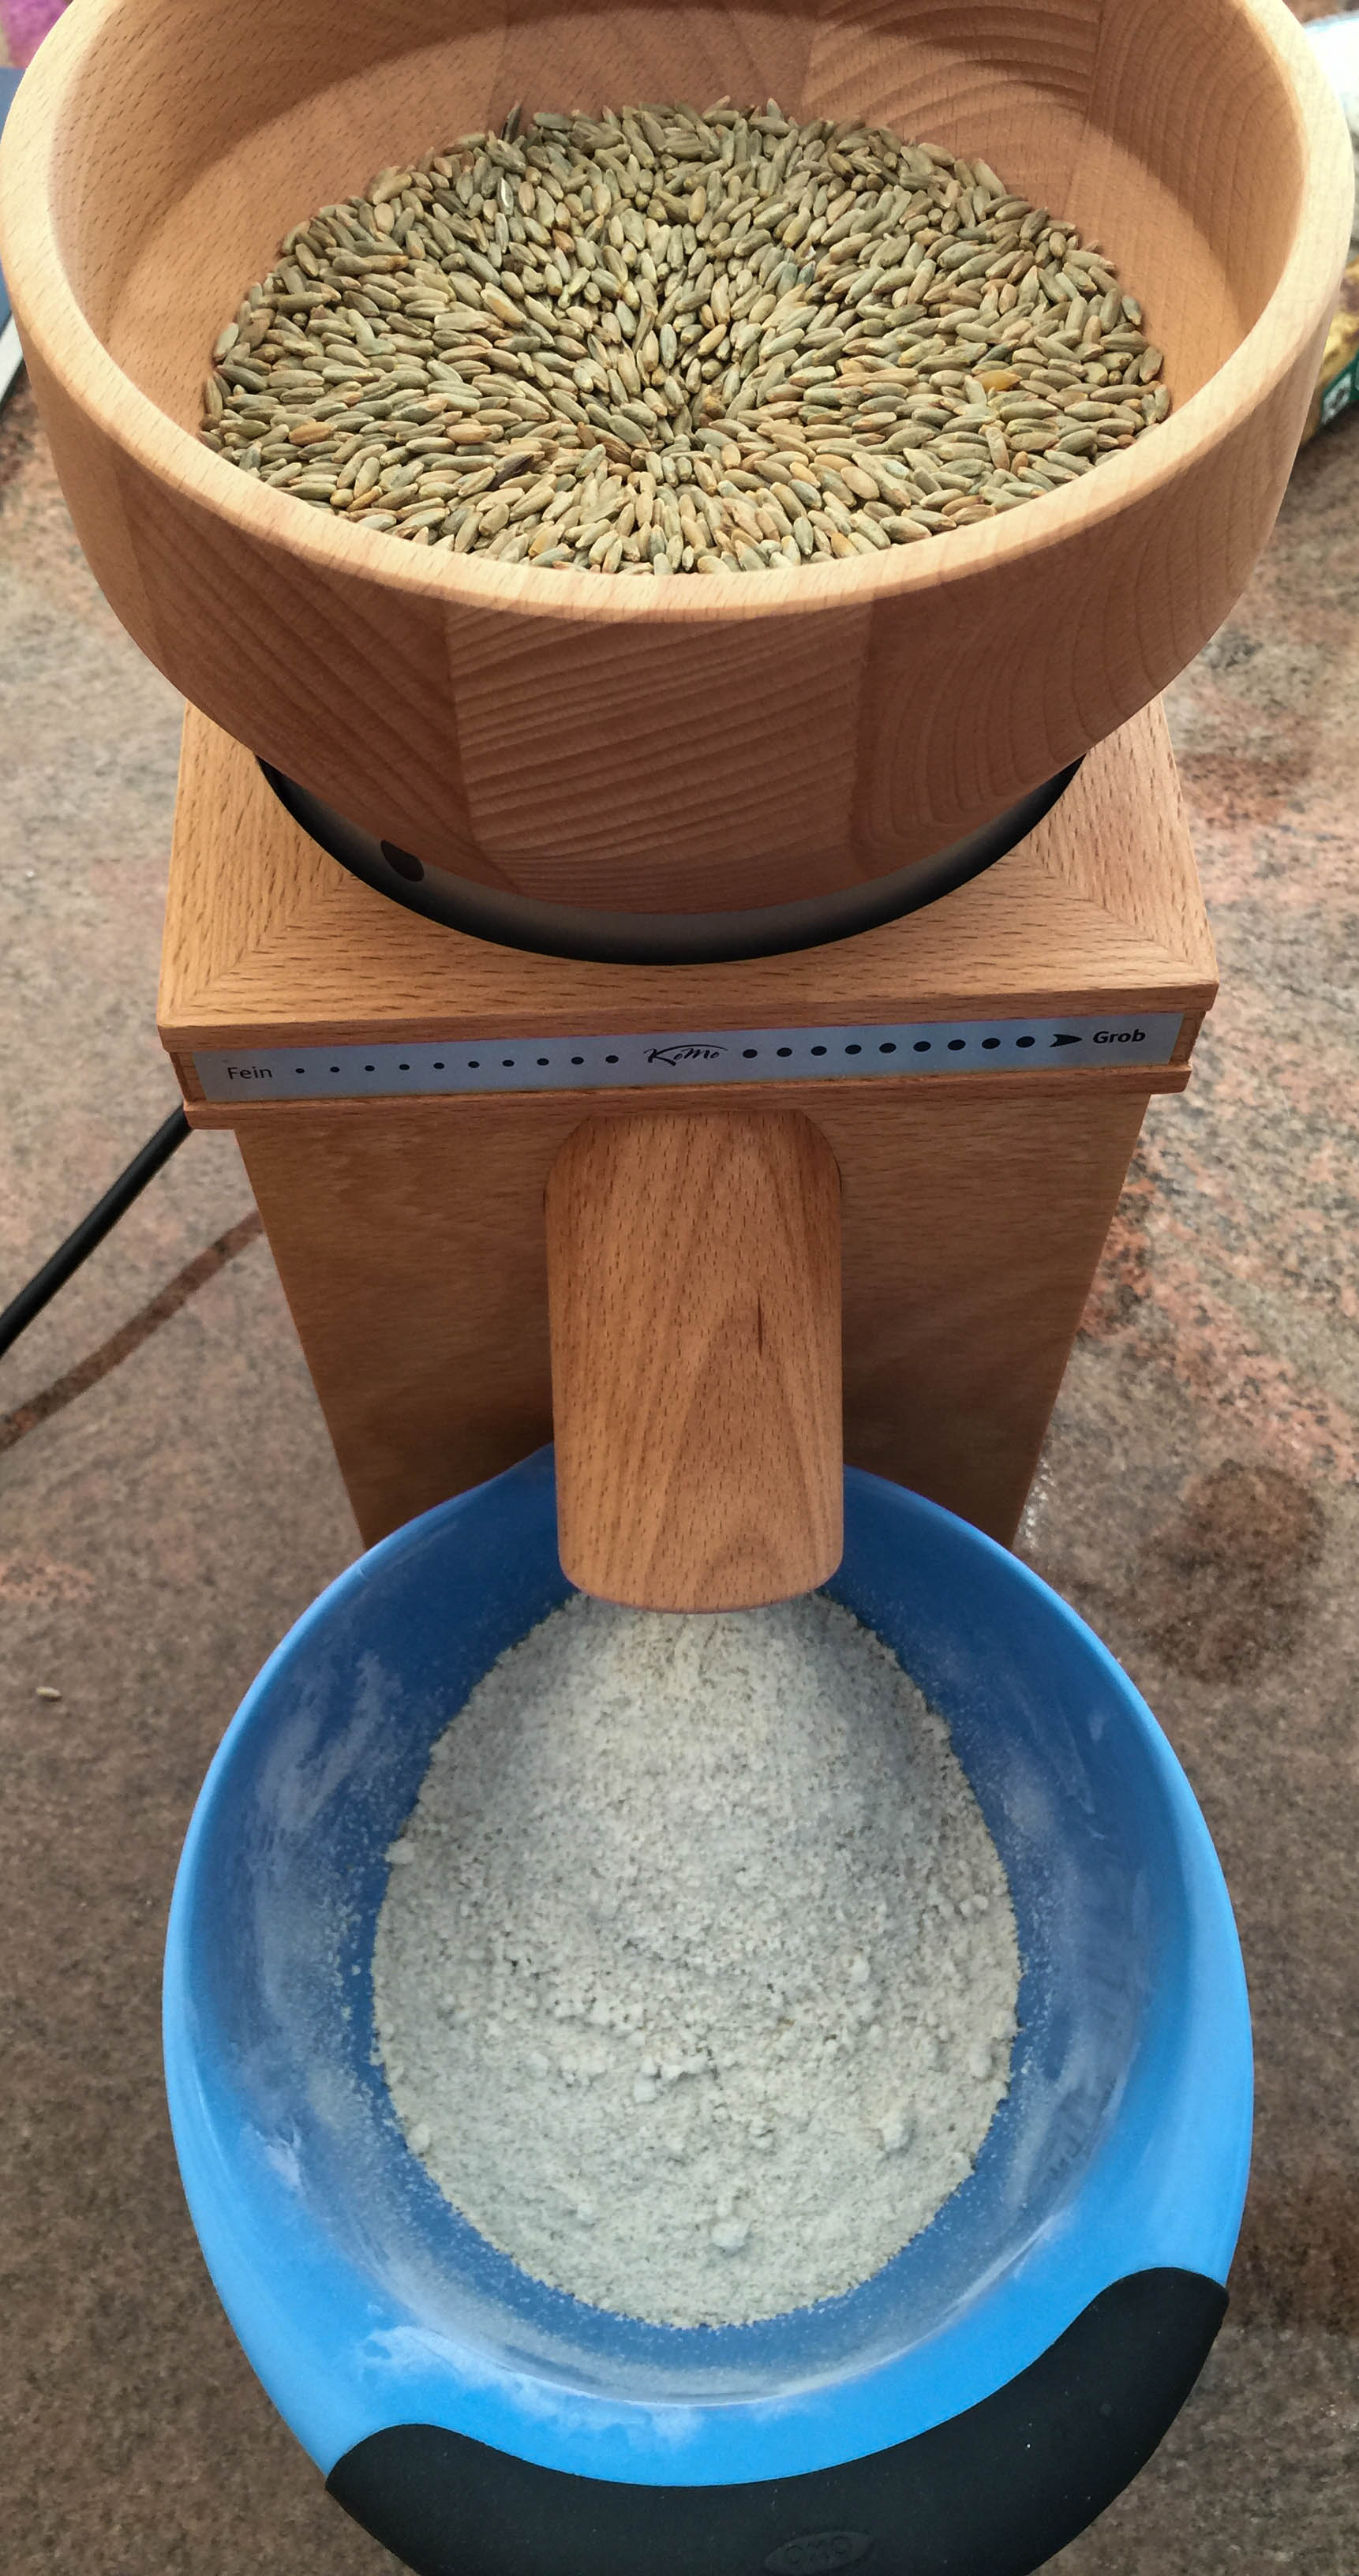 How to grind your own flour http://www.thescratchartist.com/